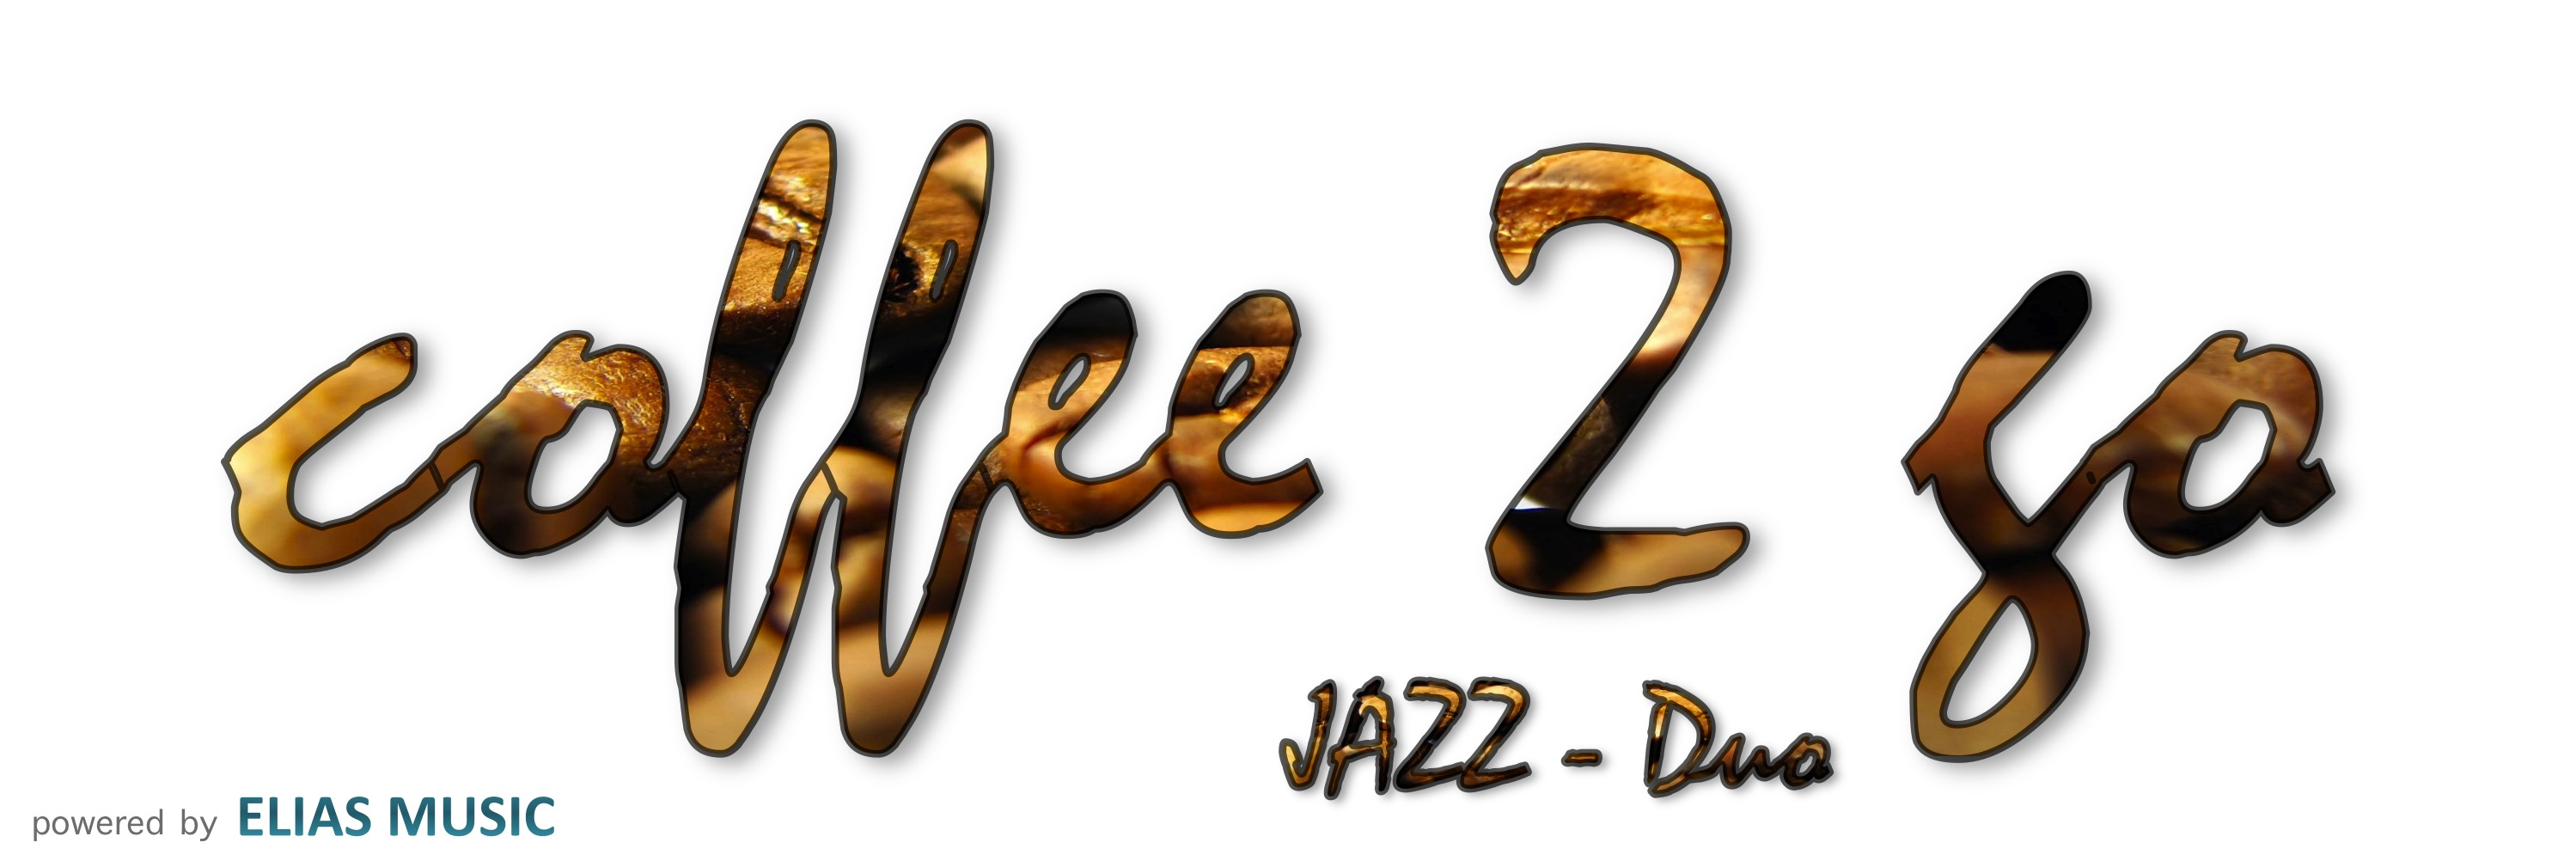 coffee 2 go - Jazz Duo ...powered by ELIAS MUSIC